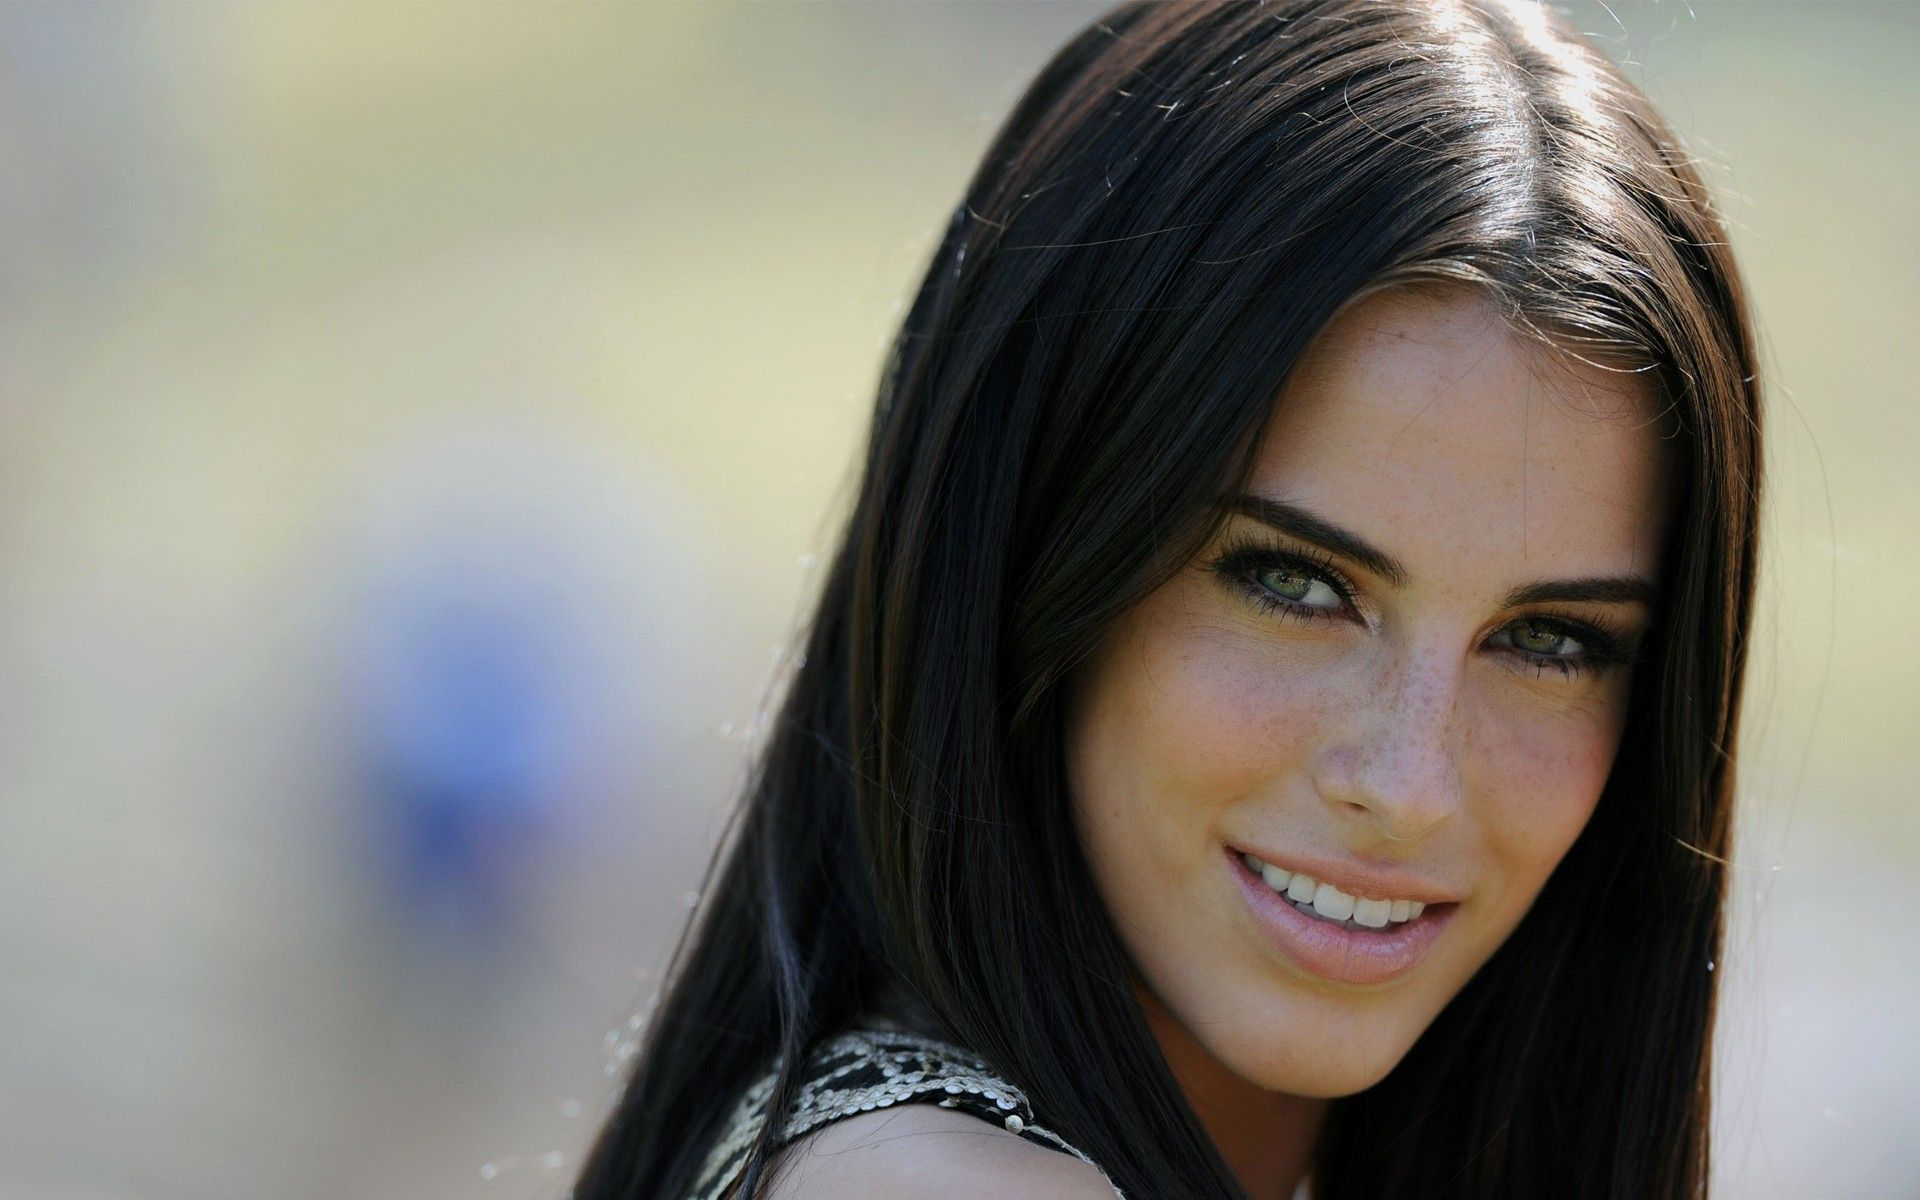 Pin By Justin Fricke On Freckles And Fair Skin Jessica Lowndes Black Hair Green Eyes Green Eyes